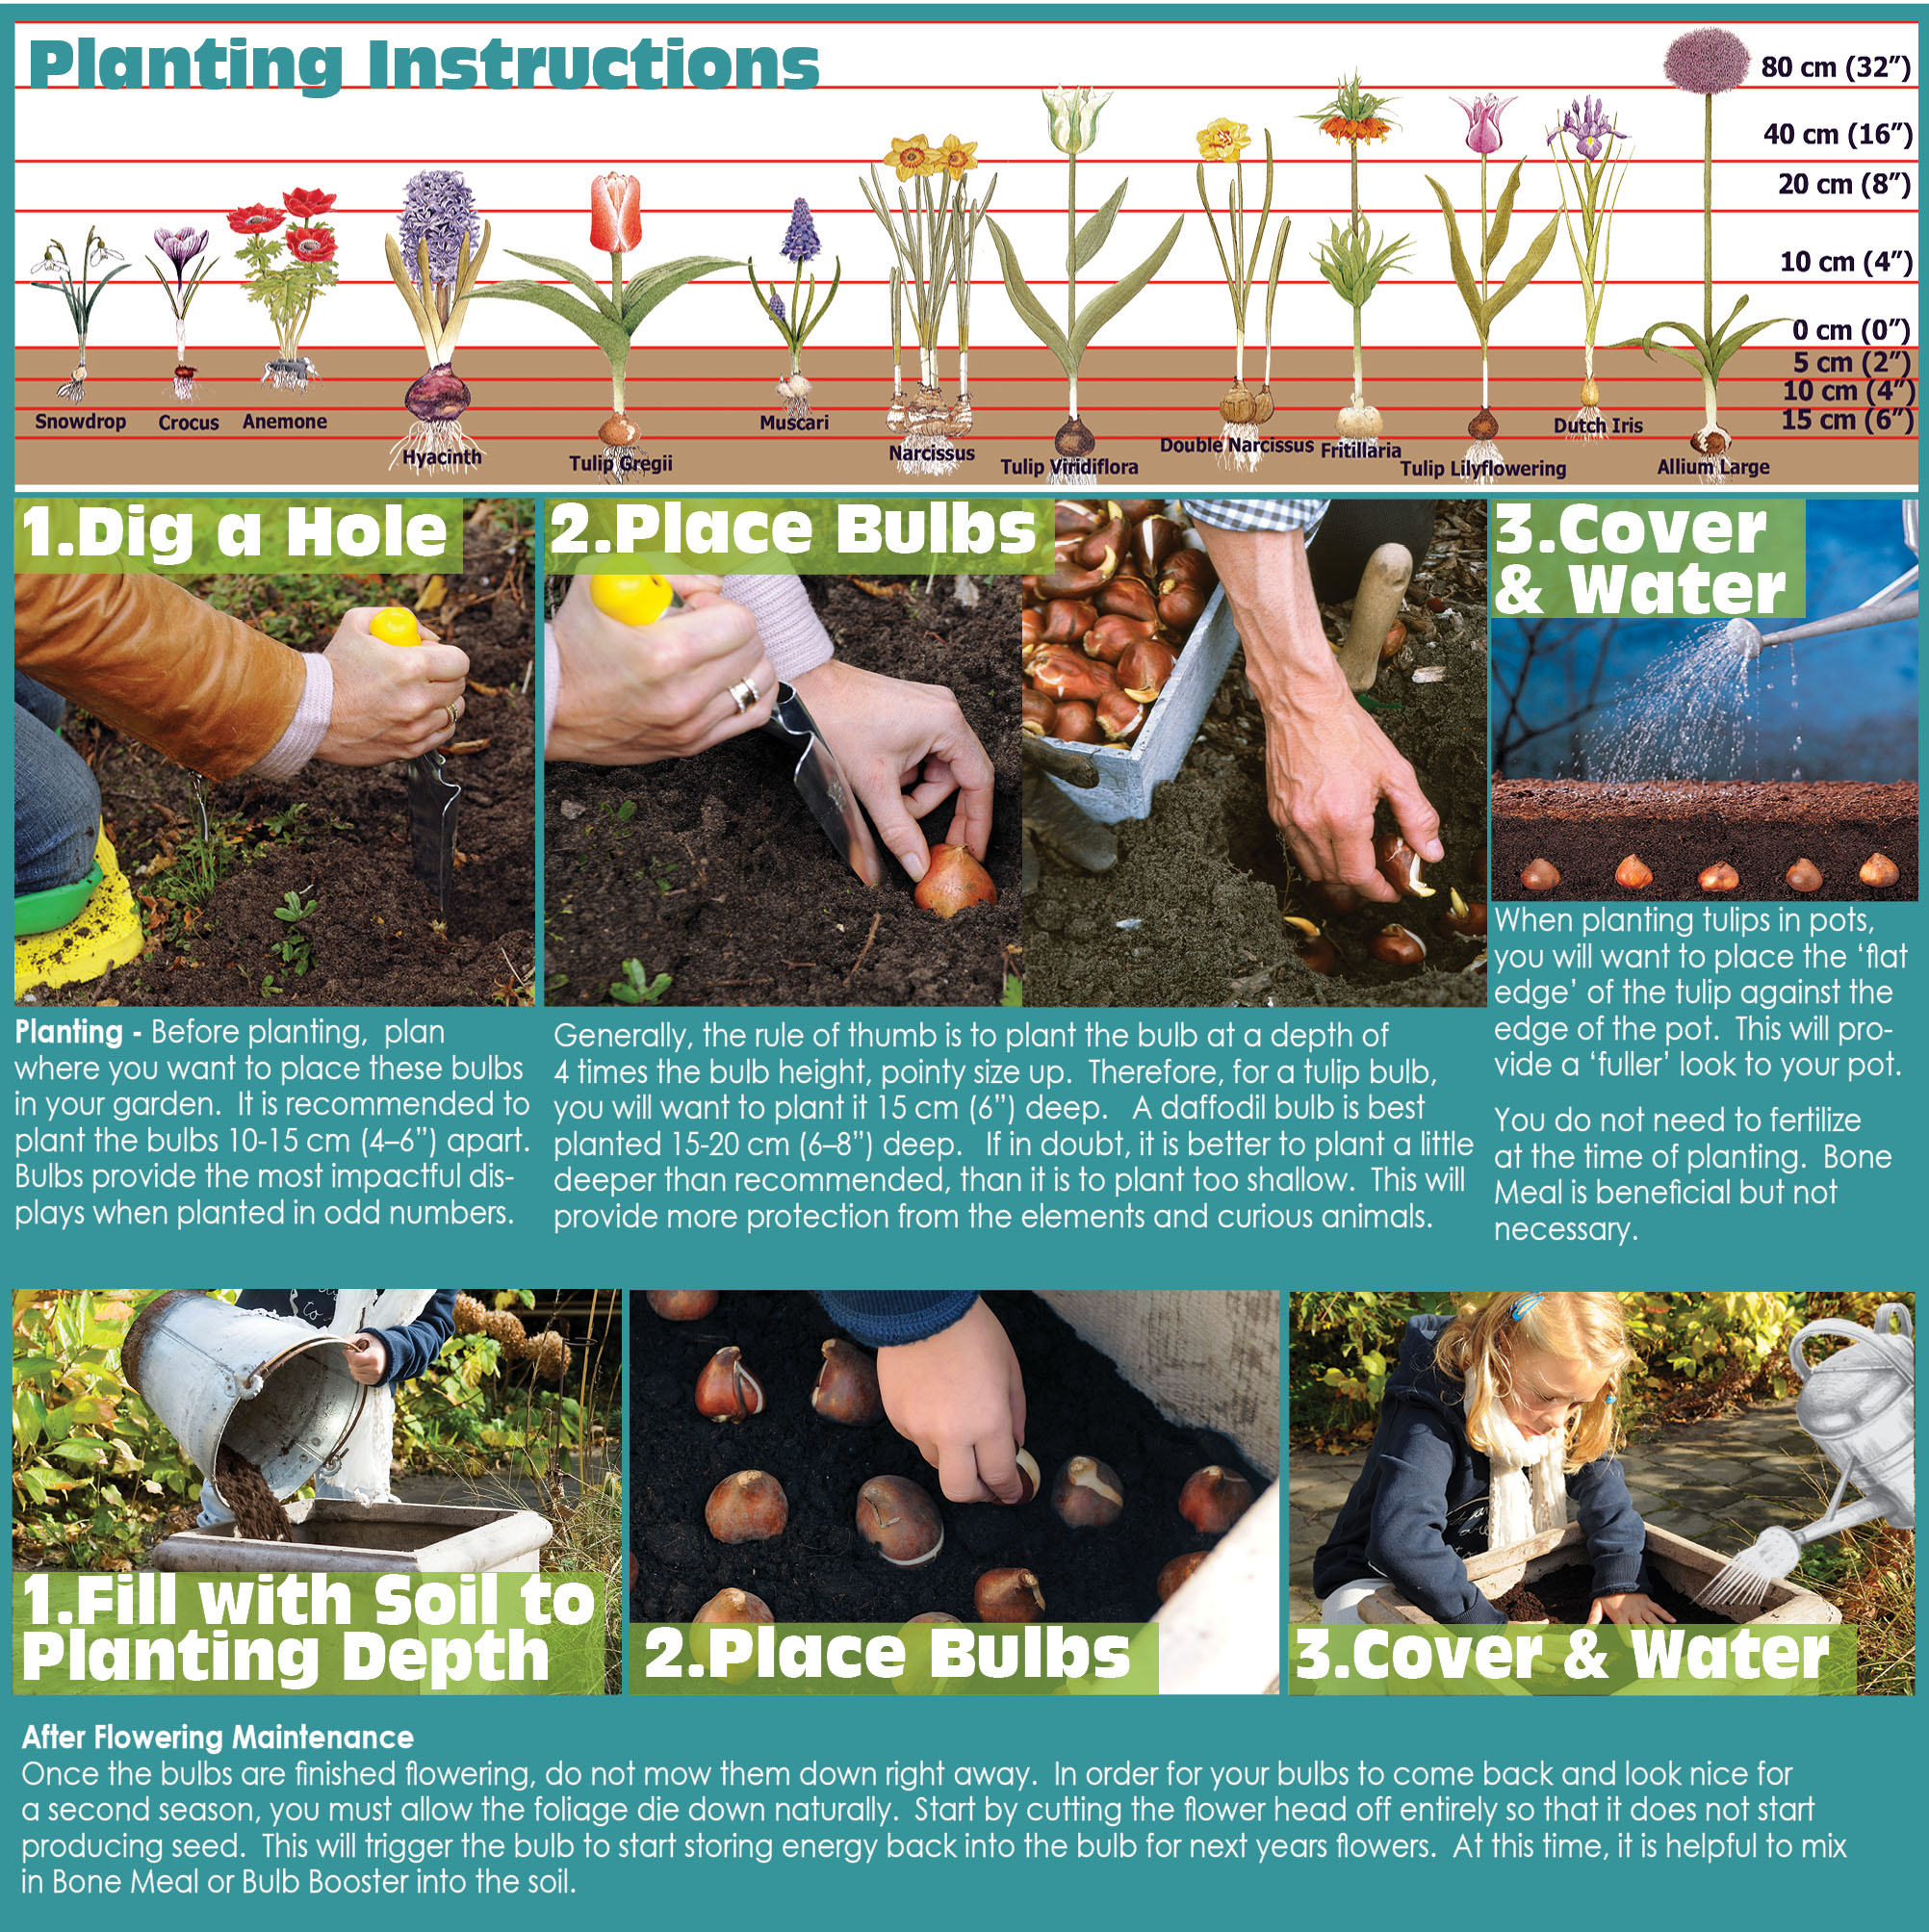 How to Plant Spring Bulbs in the Fall - English Instructions